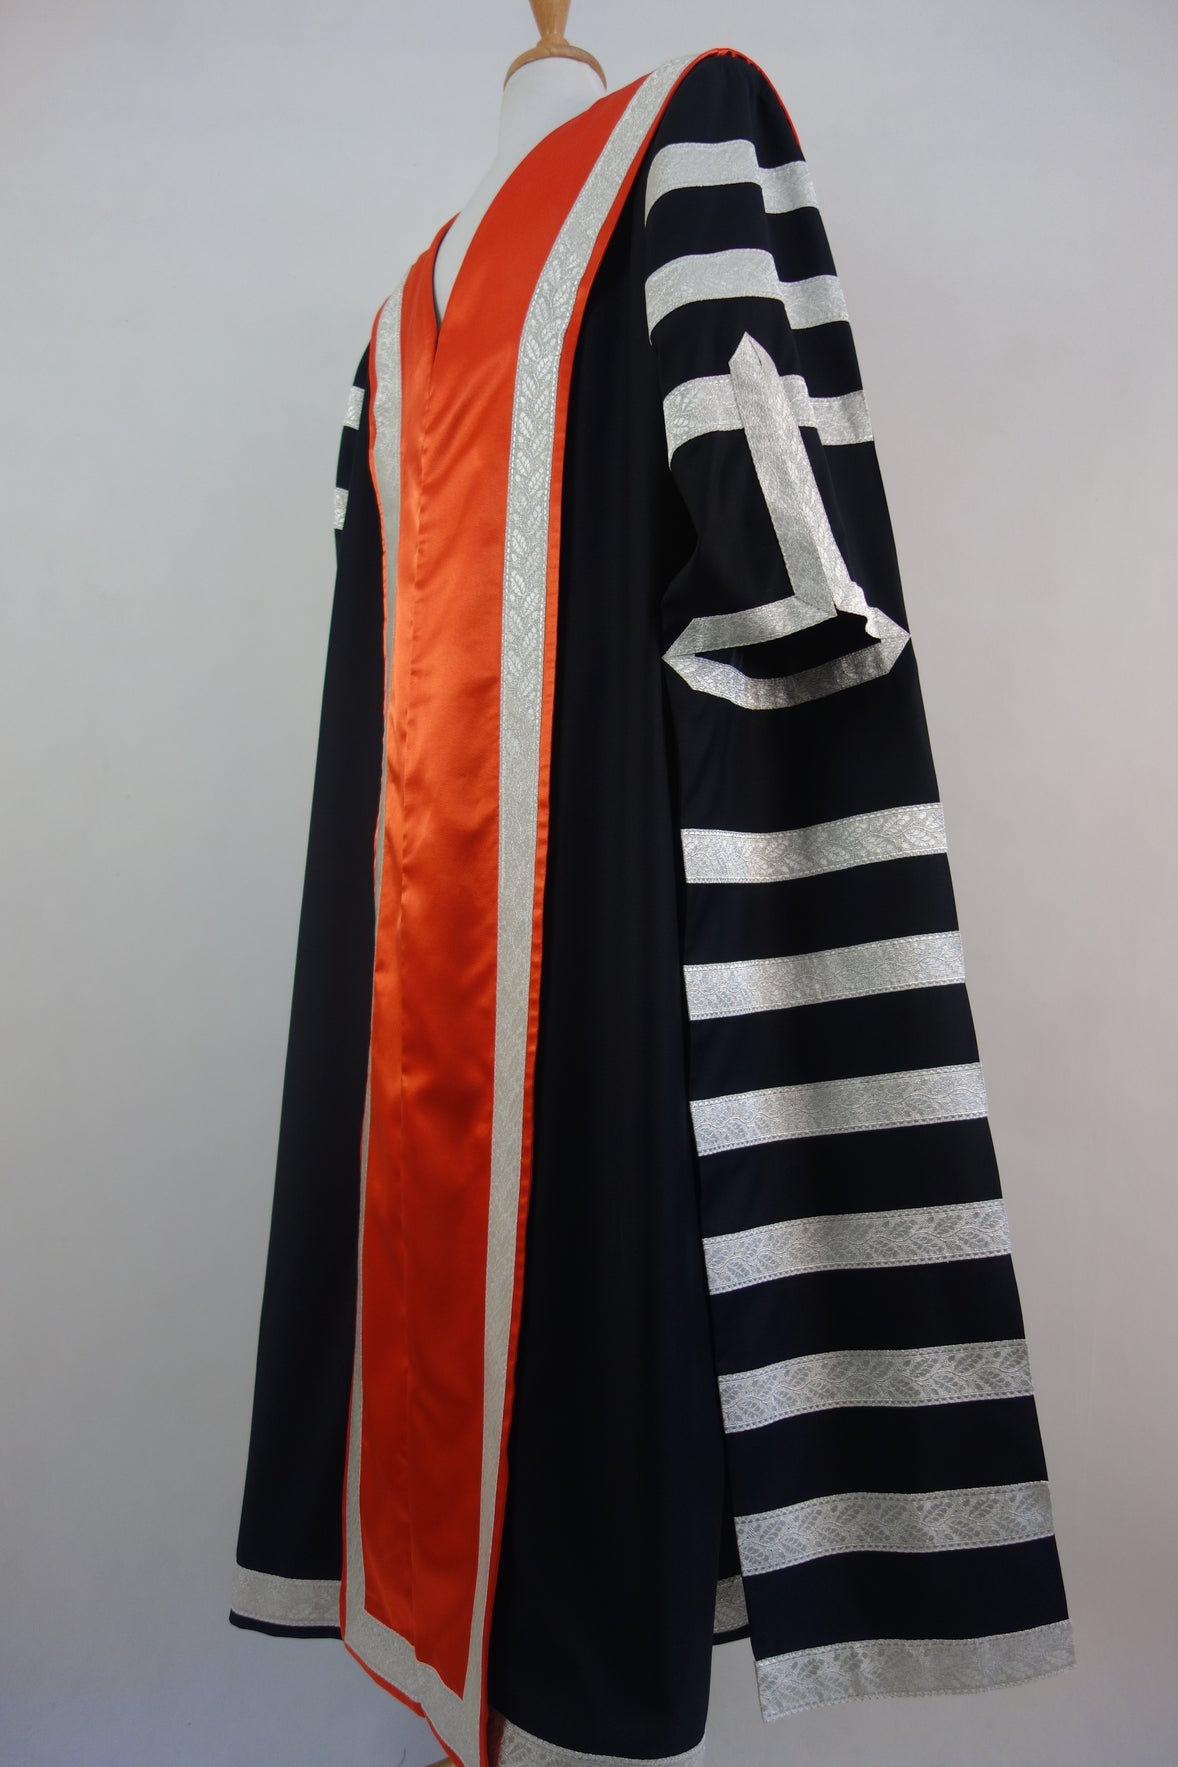 Torrens University Vice Chancellor Robe